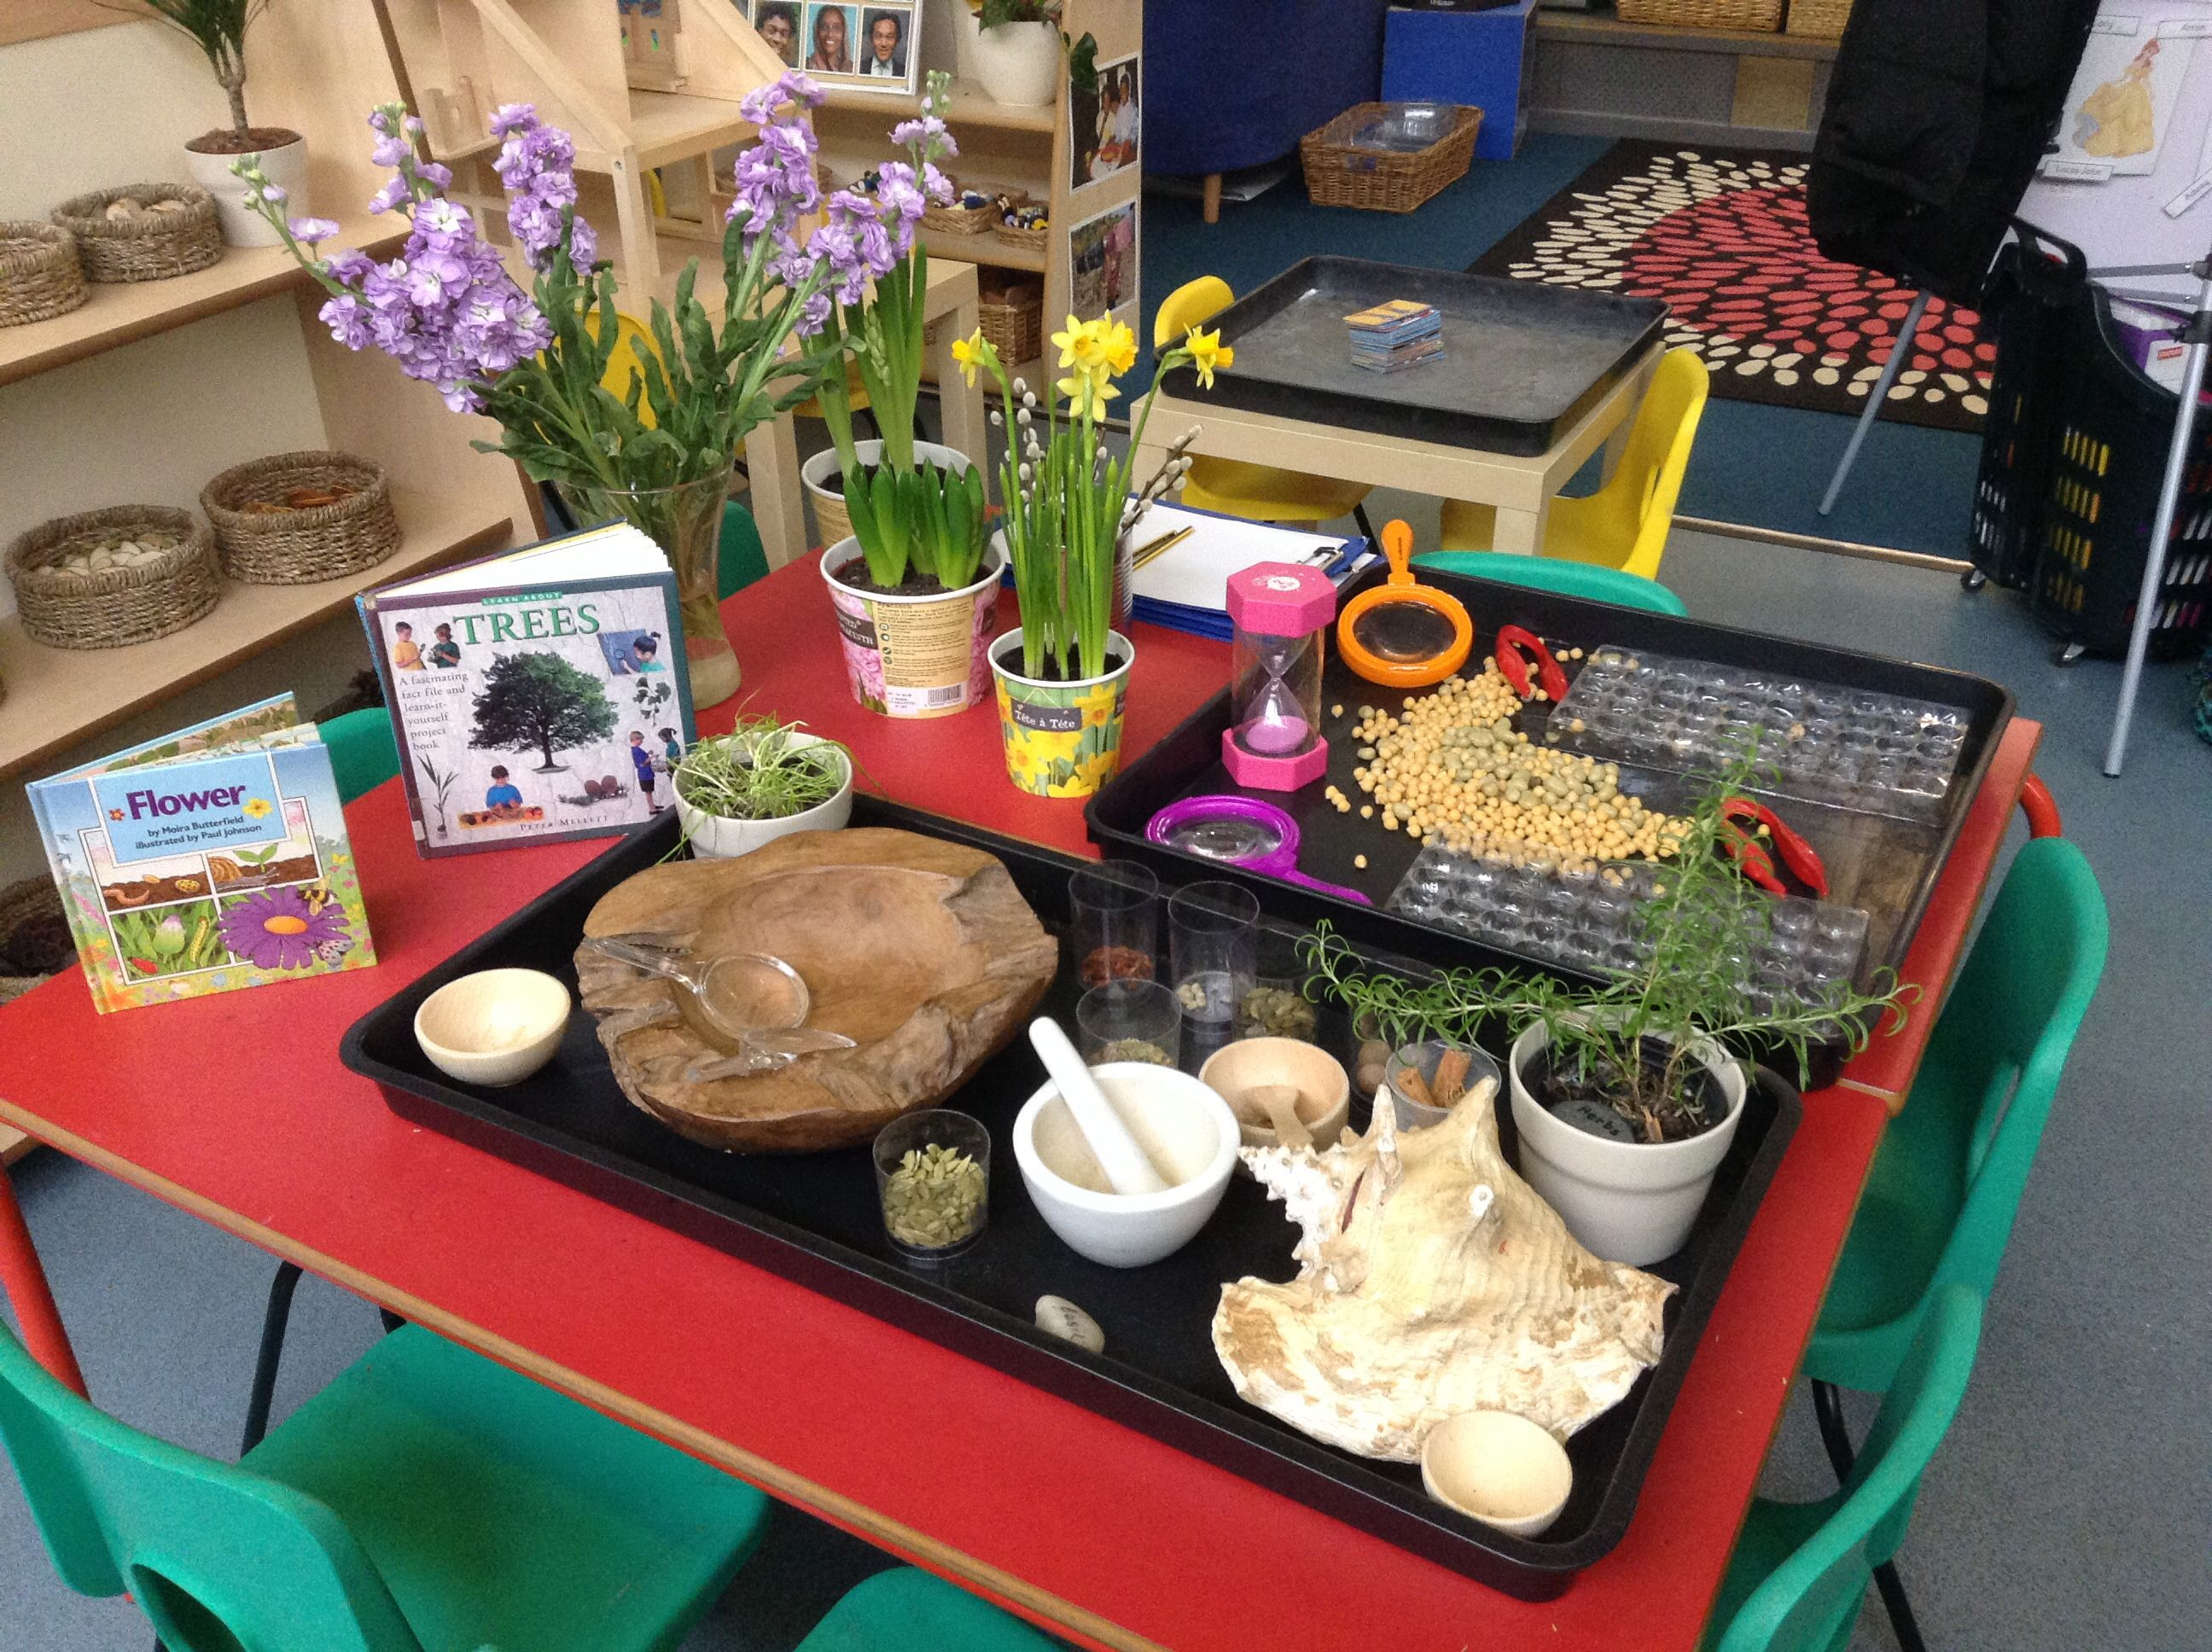 Herb investigation, bean sorting, and natural plants.